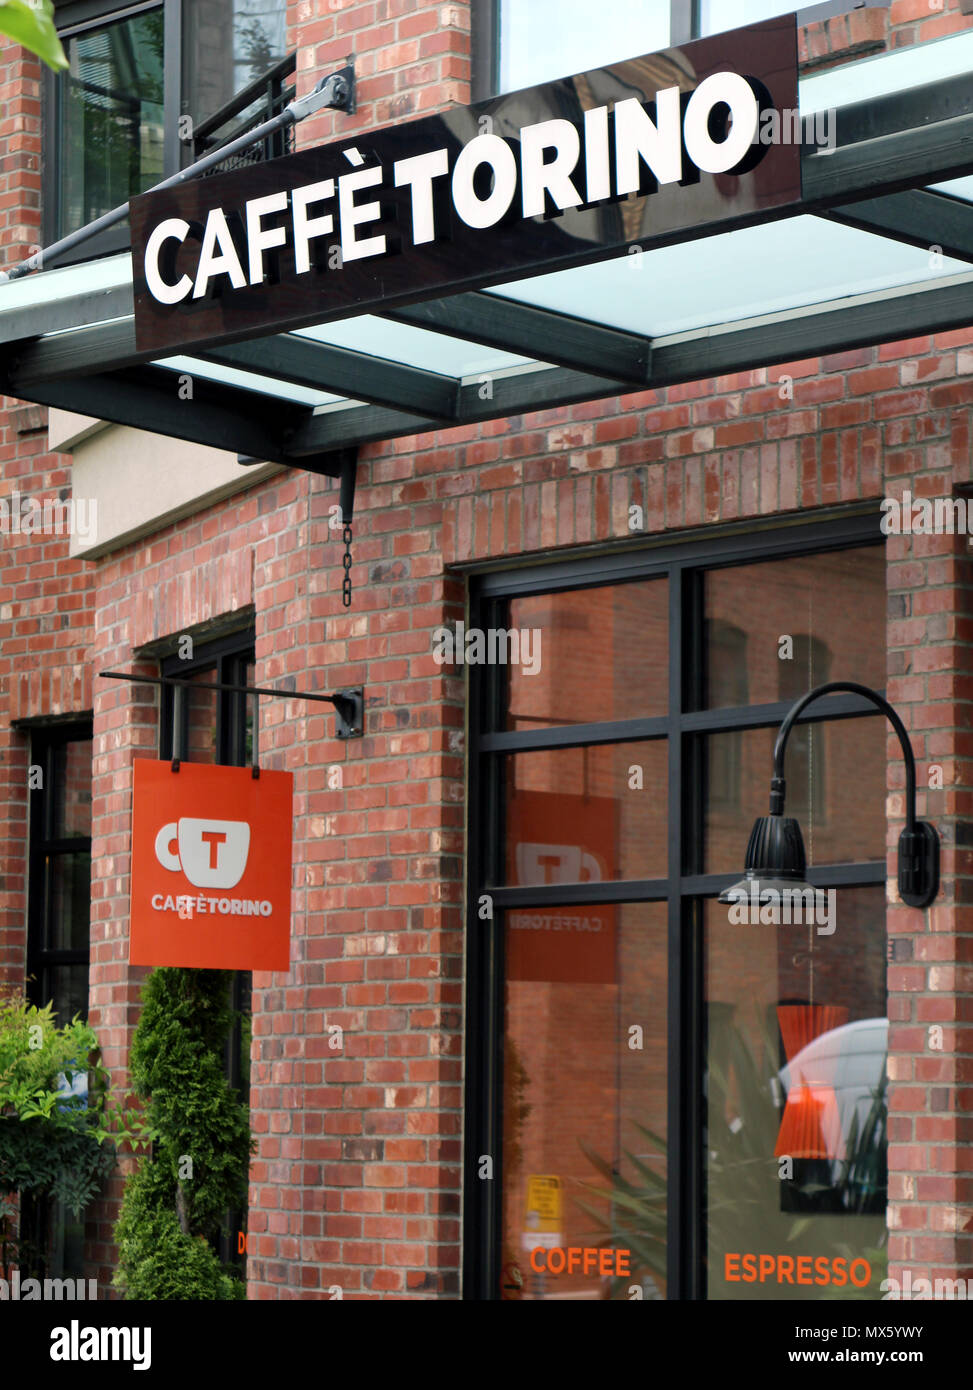 Caffè Torino storefront in South Lake Union neighborhood in Seattle. - Stock Image